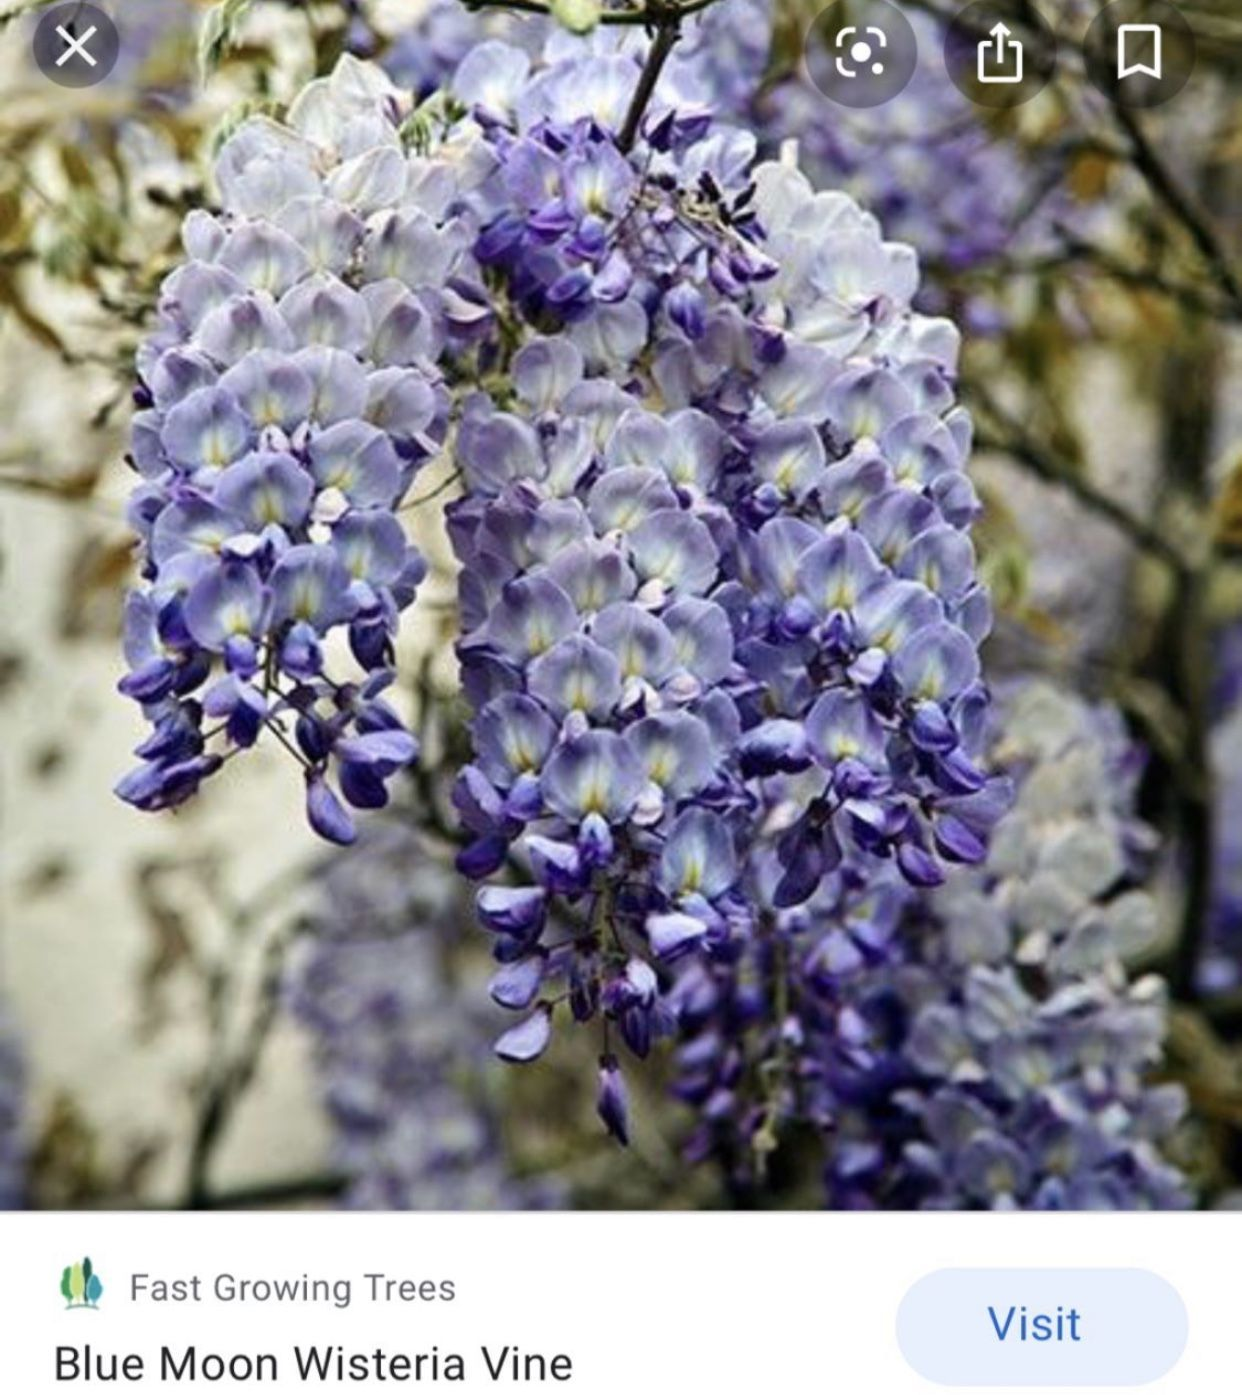 Schnellwachsende In 2020 Fast Growing Trees Wisteria Tree Wisteria Plant